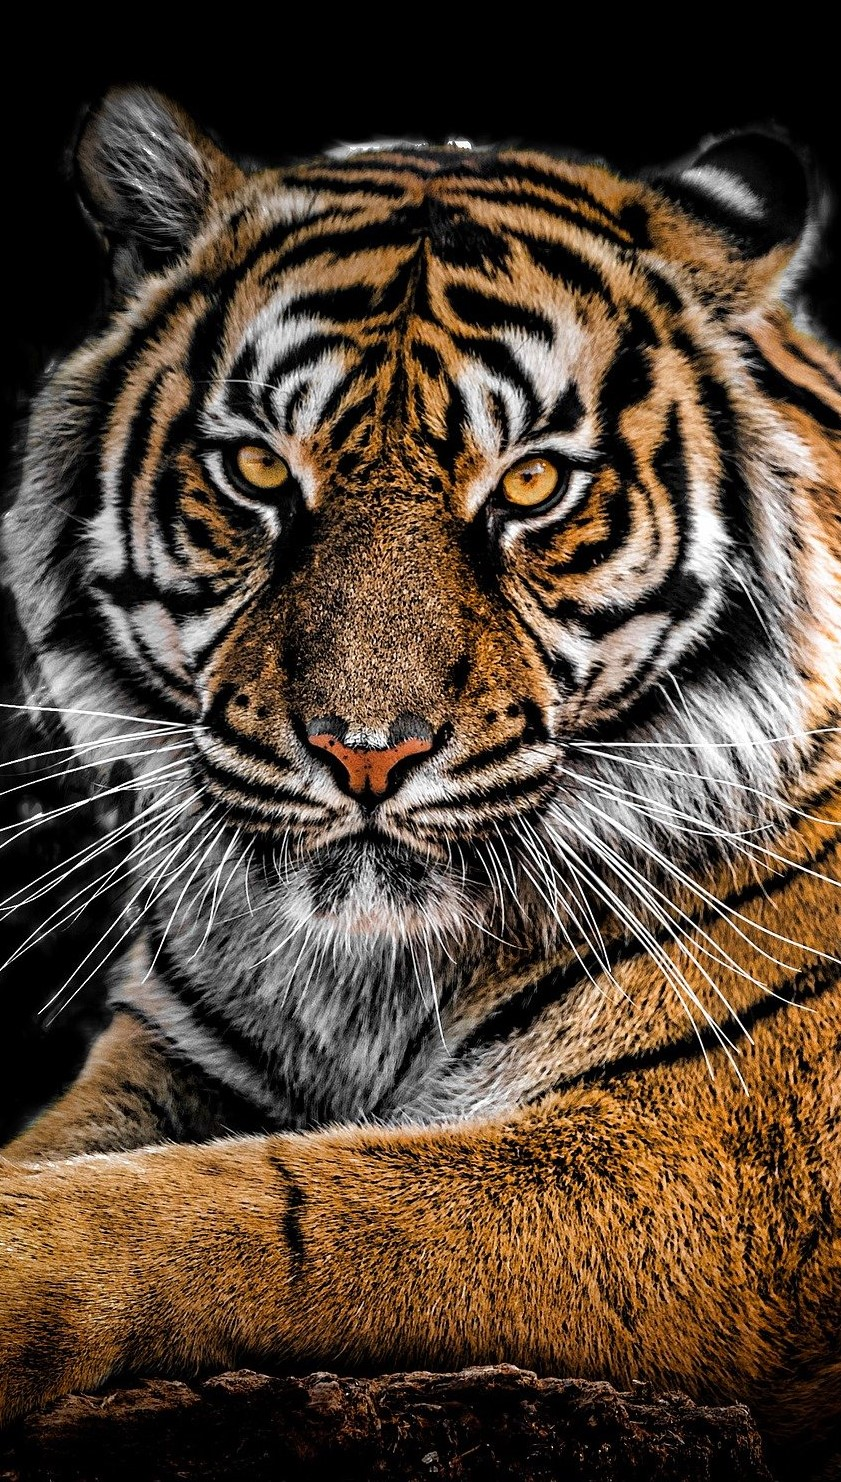 The majestic tiger.